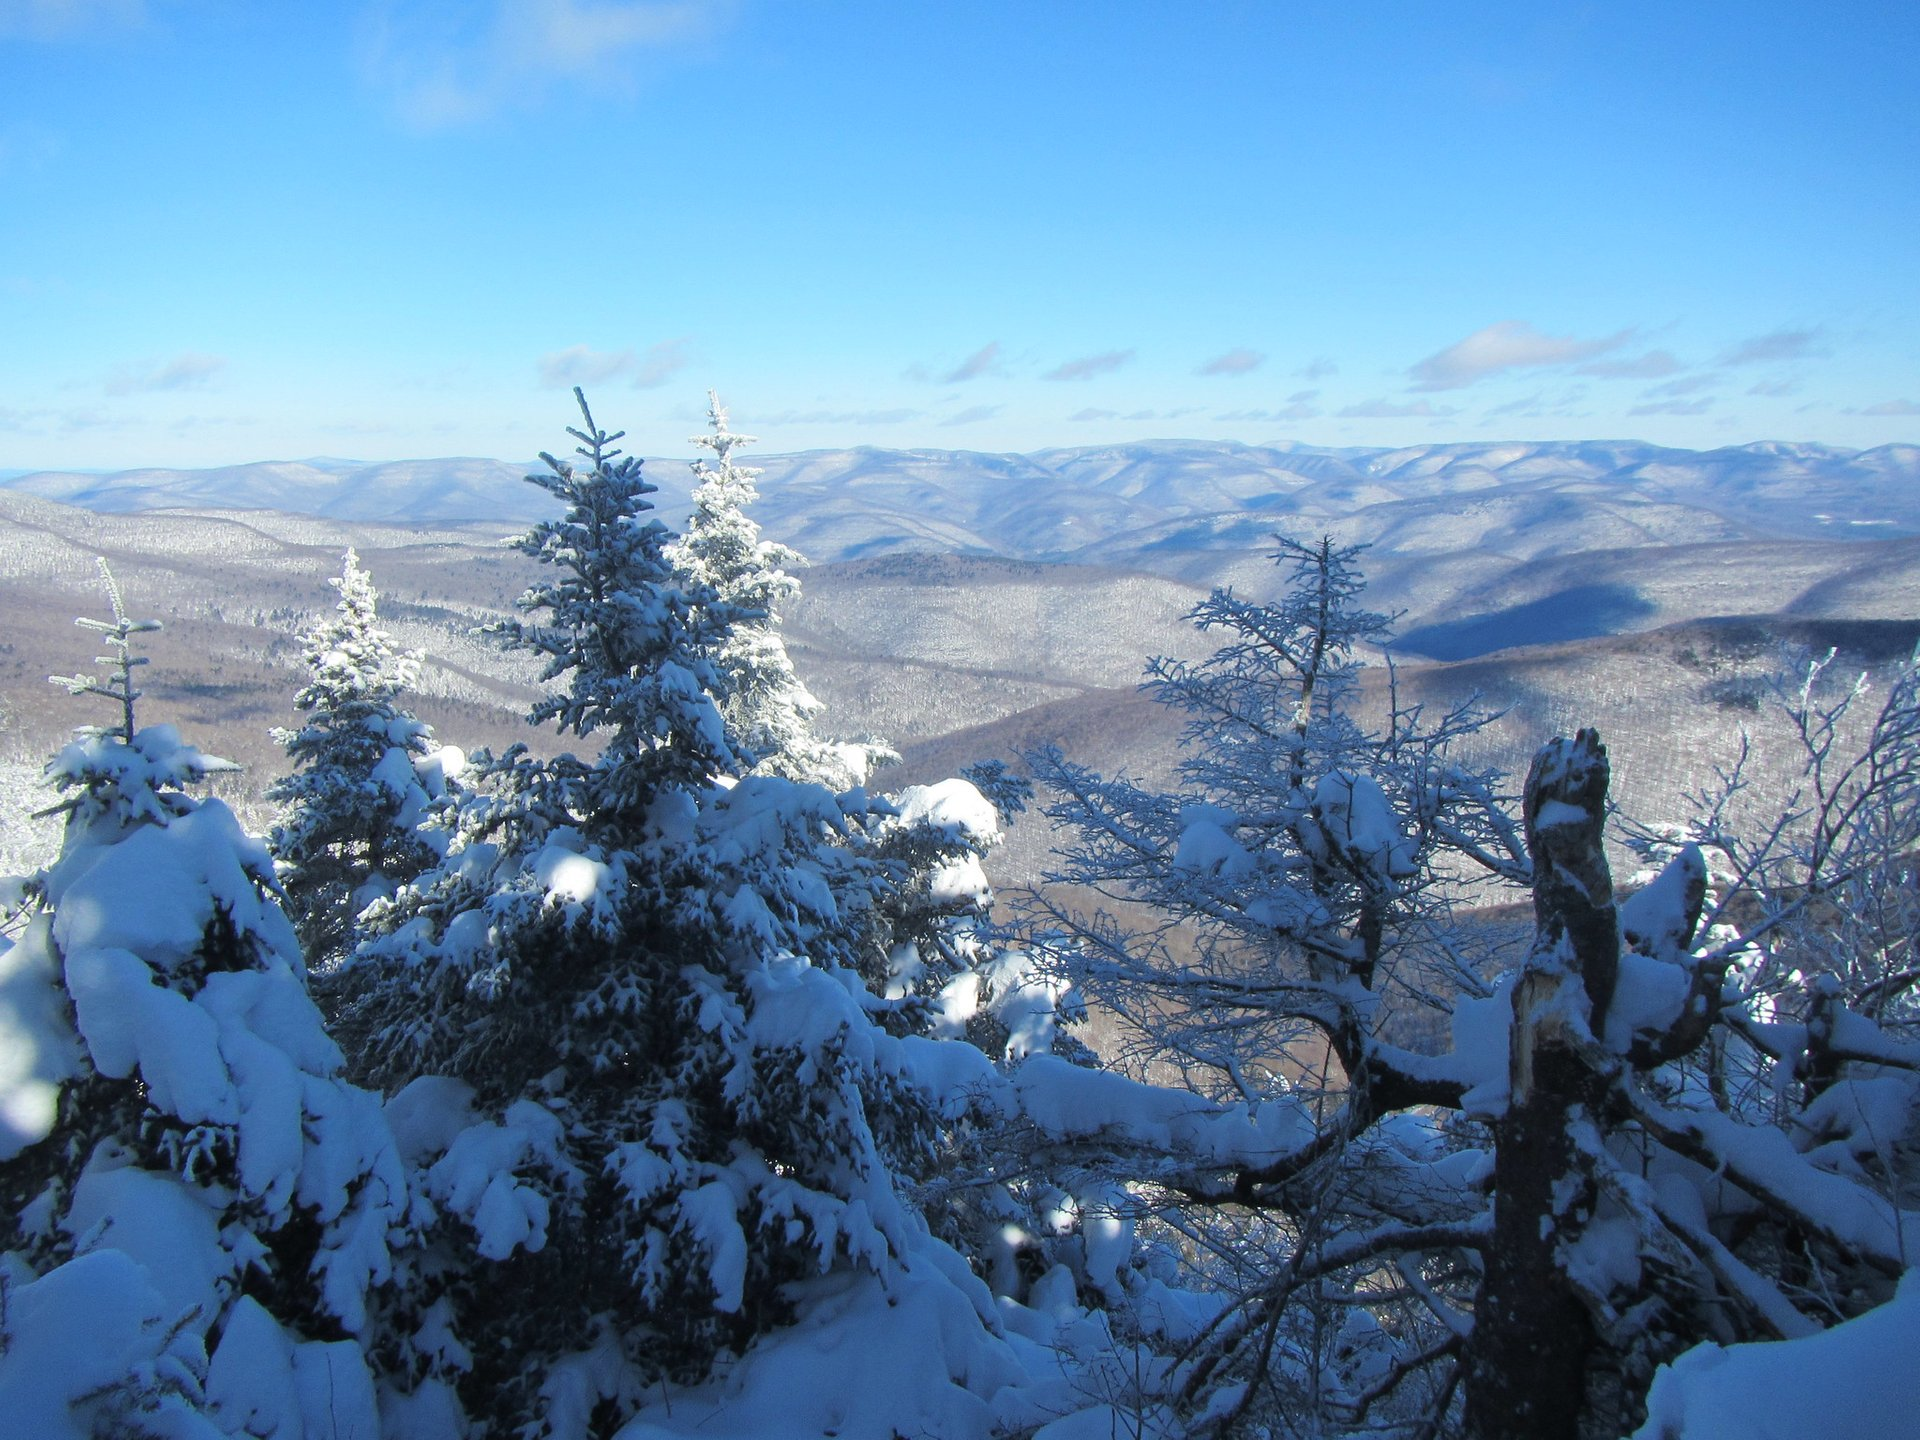 Skiing and Snowboarding in The Catskill Mountains  in New York State 2020 - Best Time